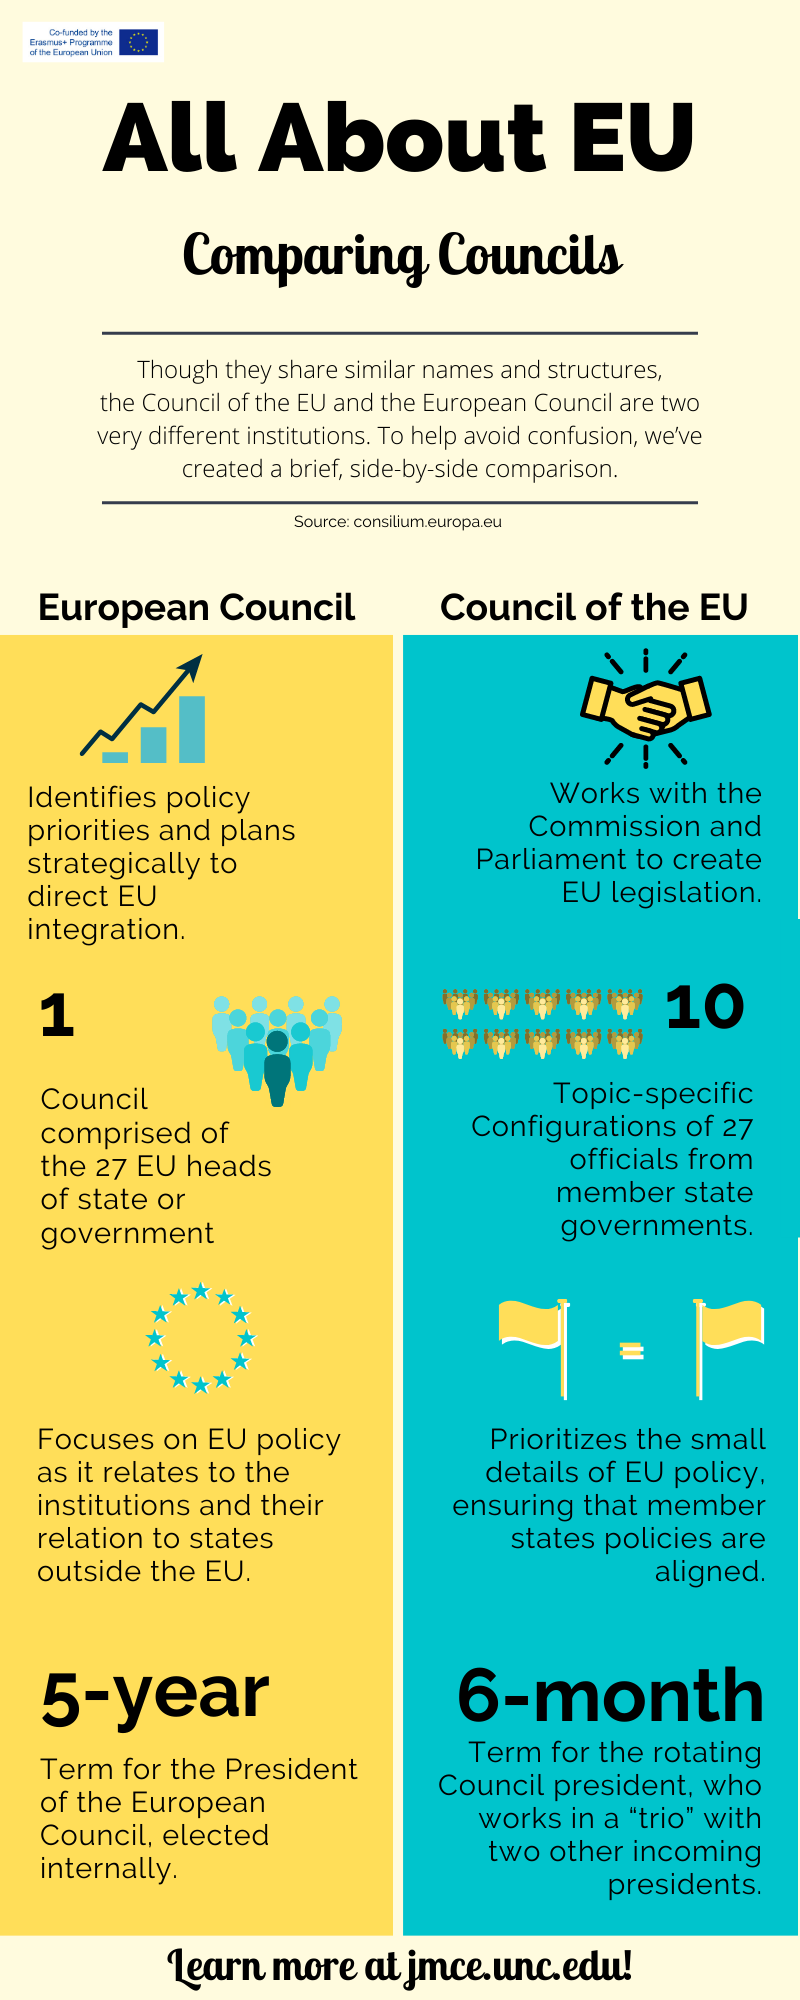 Infographic that compares four aspects of the European Council and the Council of Europe.